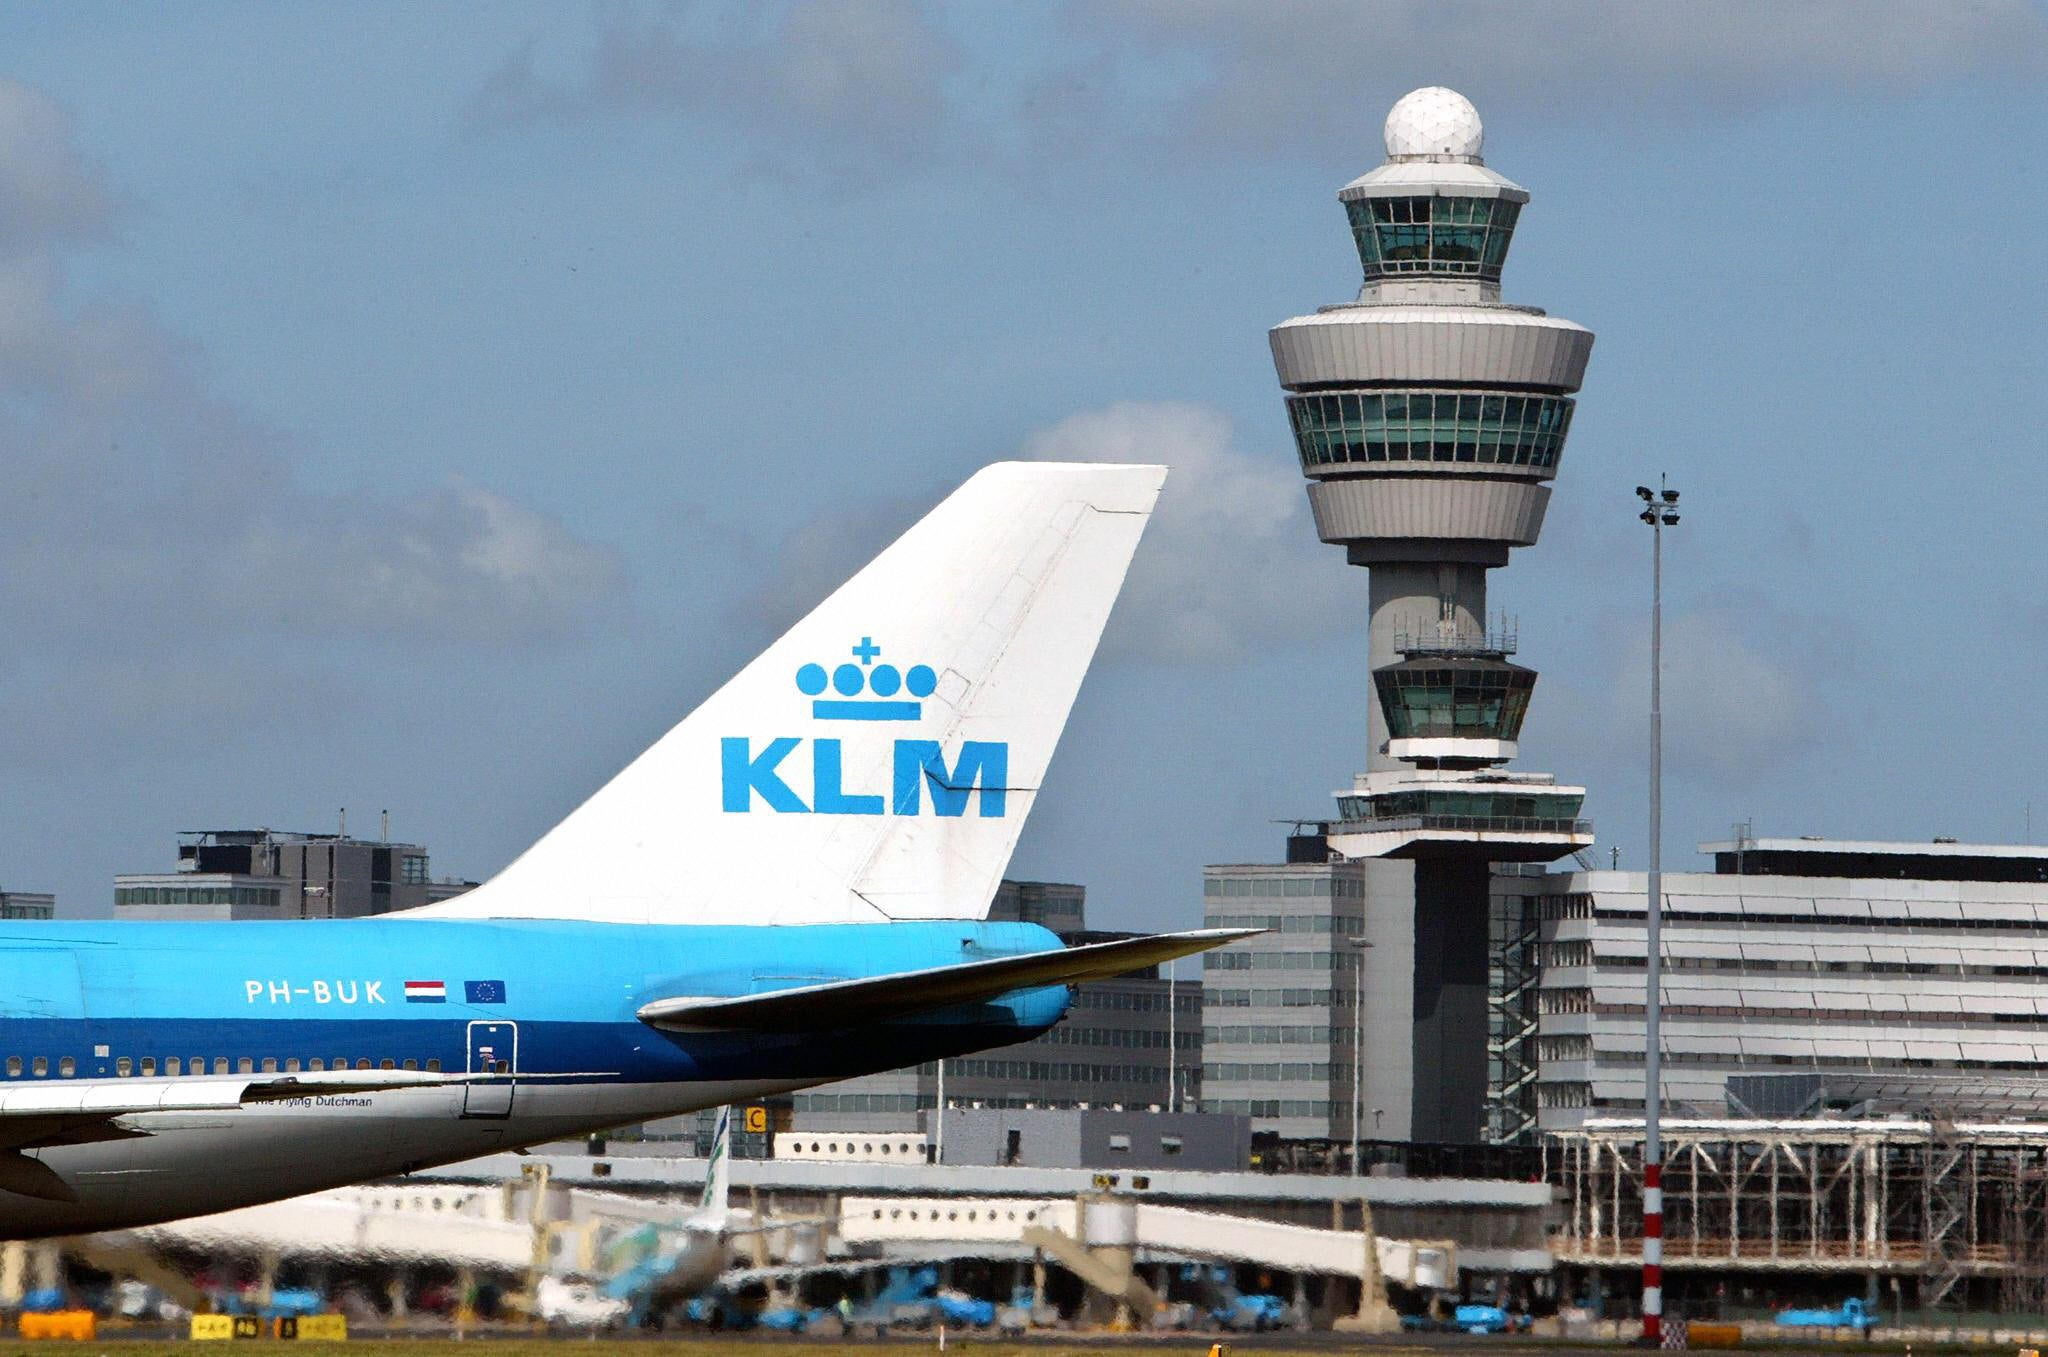 Breastfeeding mother told to cover up on KLM flight in case other passengers are offended